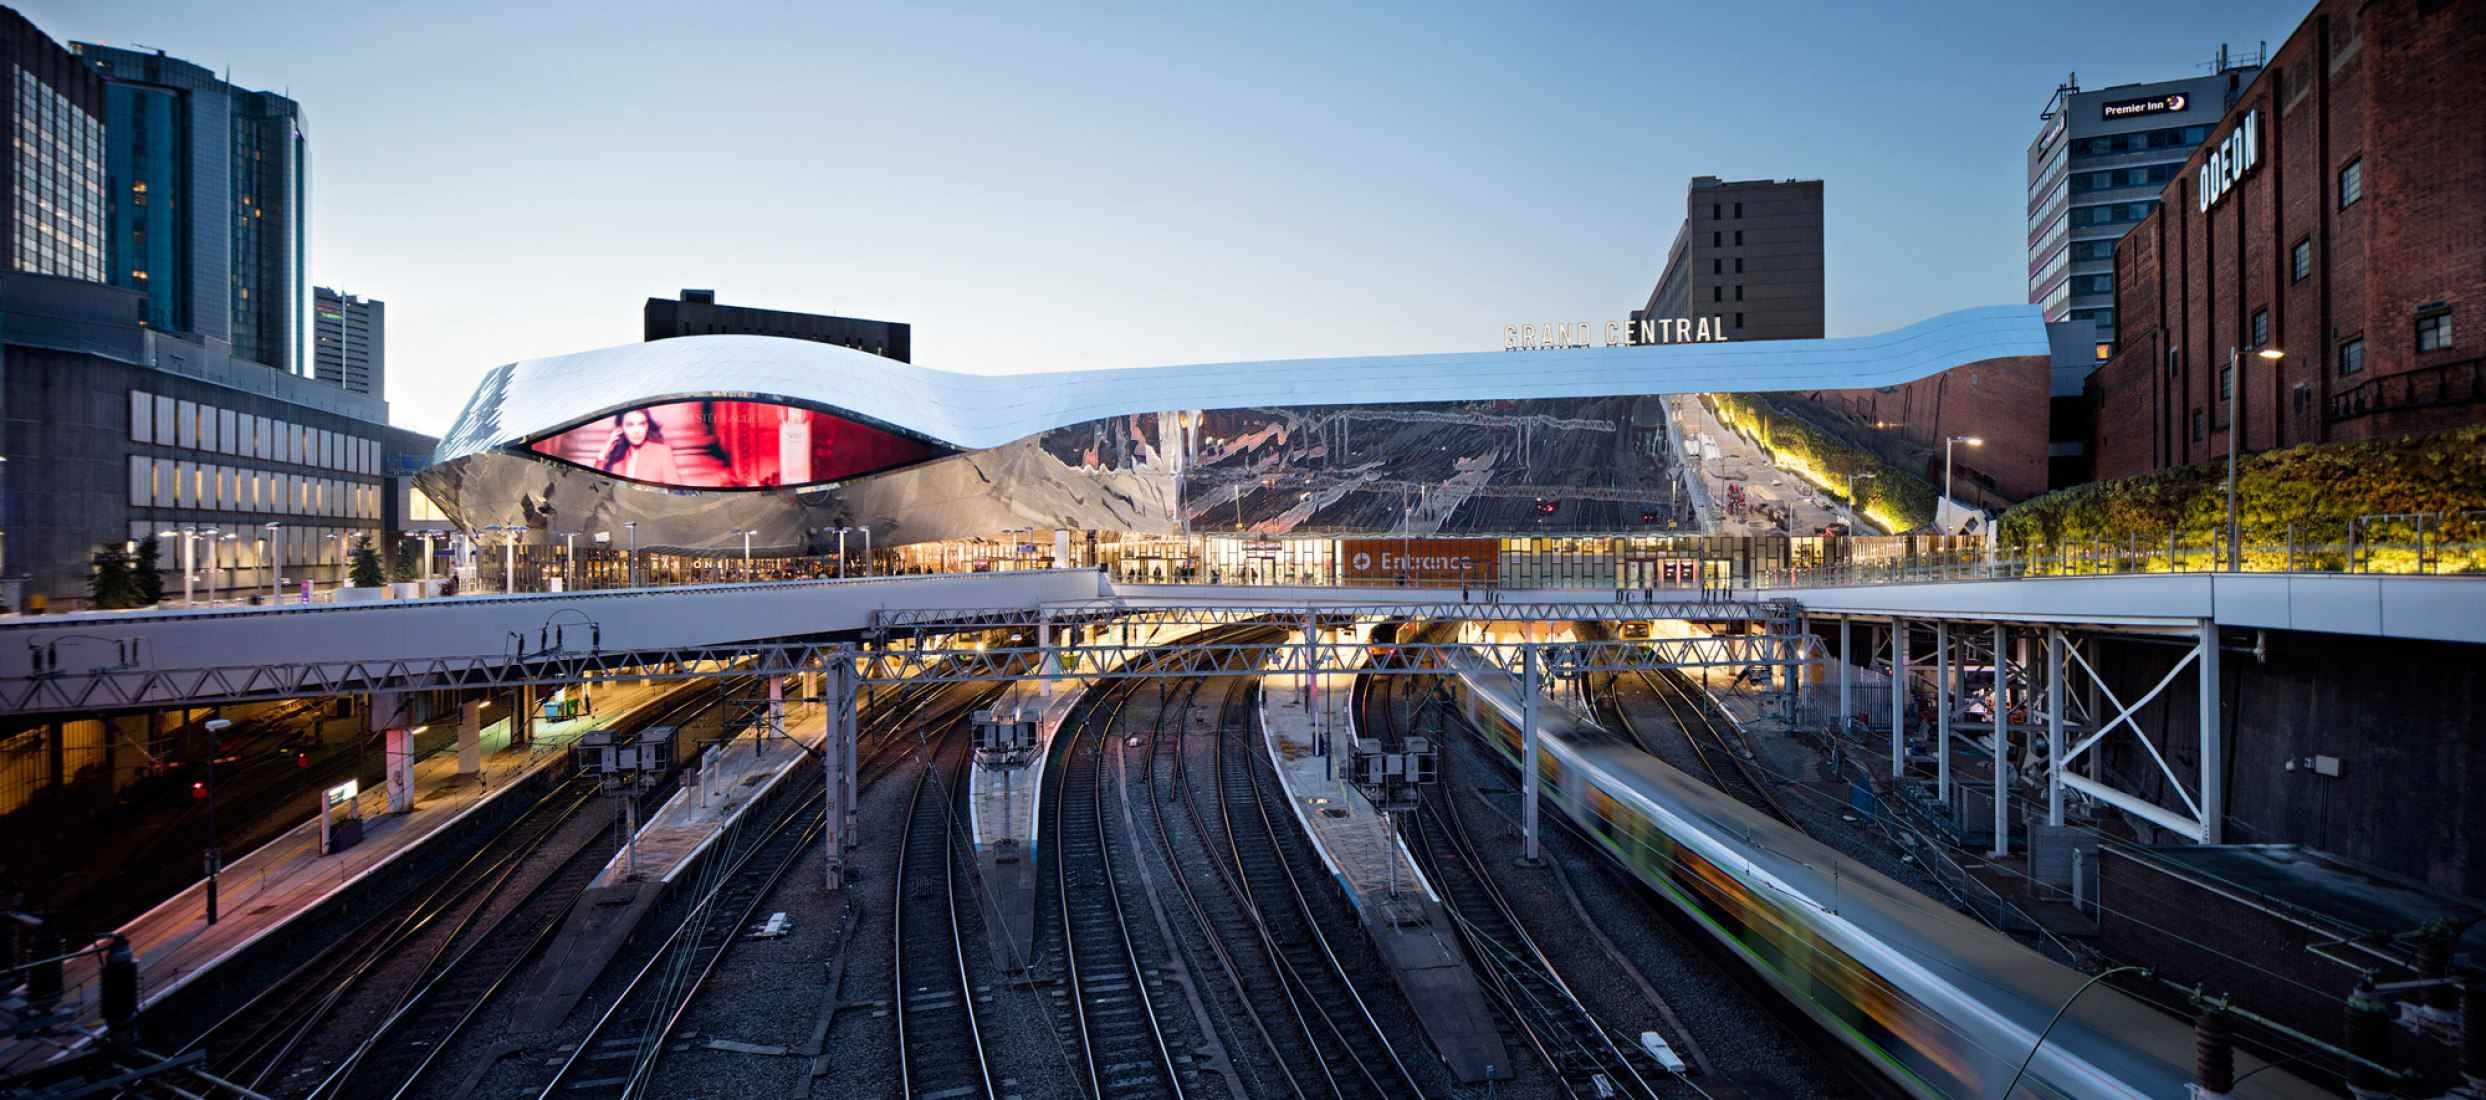 Luis M. Mansilla 2016 Award. View from the tracks, toward evening. Birmingham New Street Station by AZPML. Photograph @ Javier Callejas.